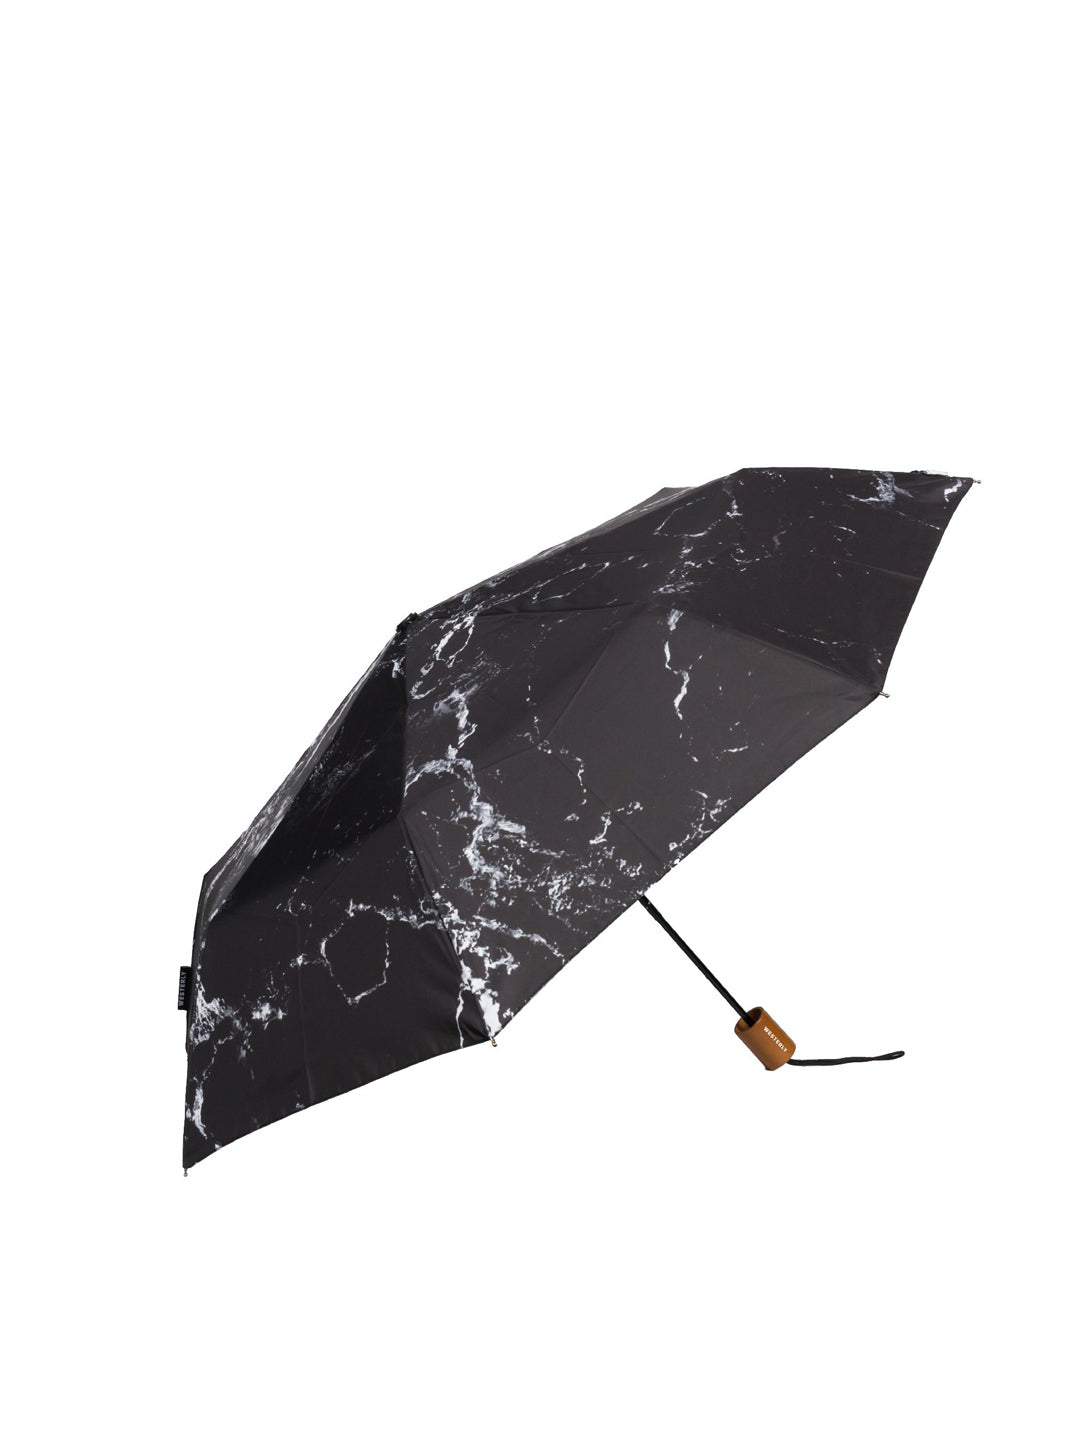 Drifter Umbrella - Dark Water-Westerly Goods-Over the Rainbow